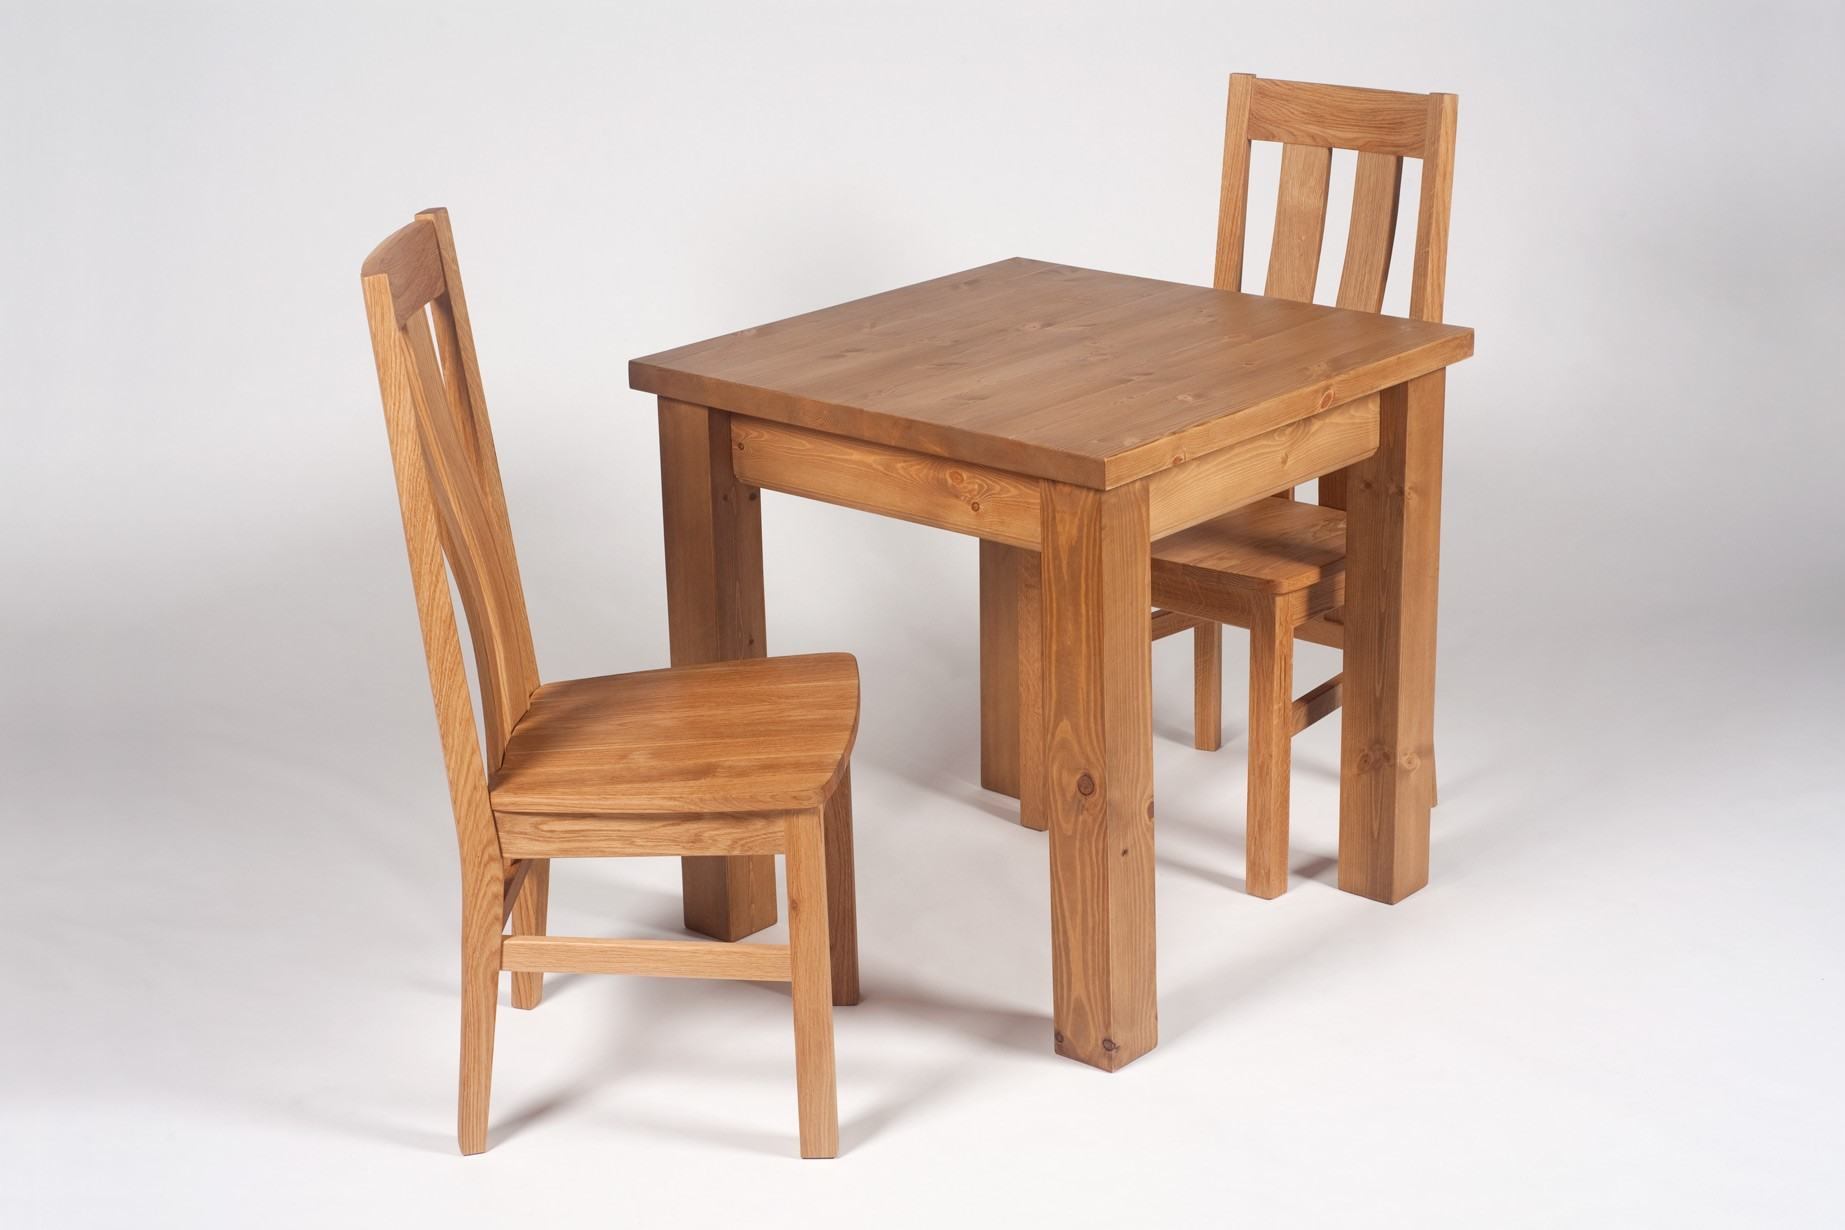 wooden dining tables and chairs photo - 10